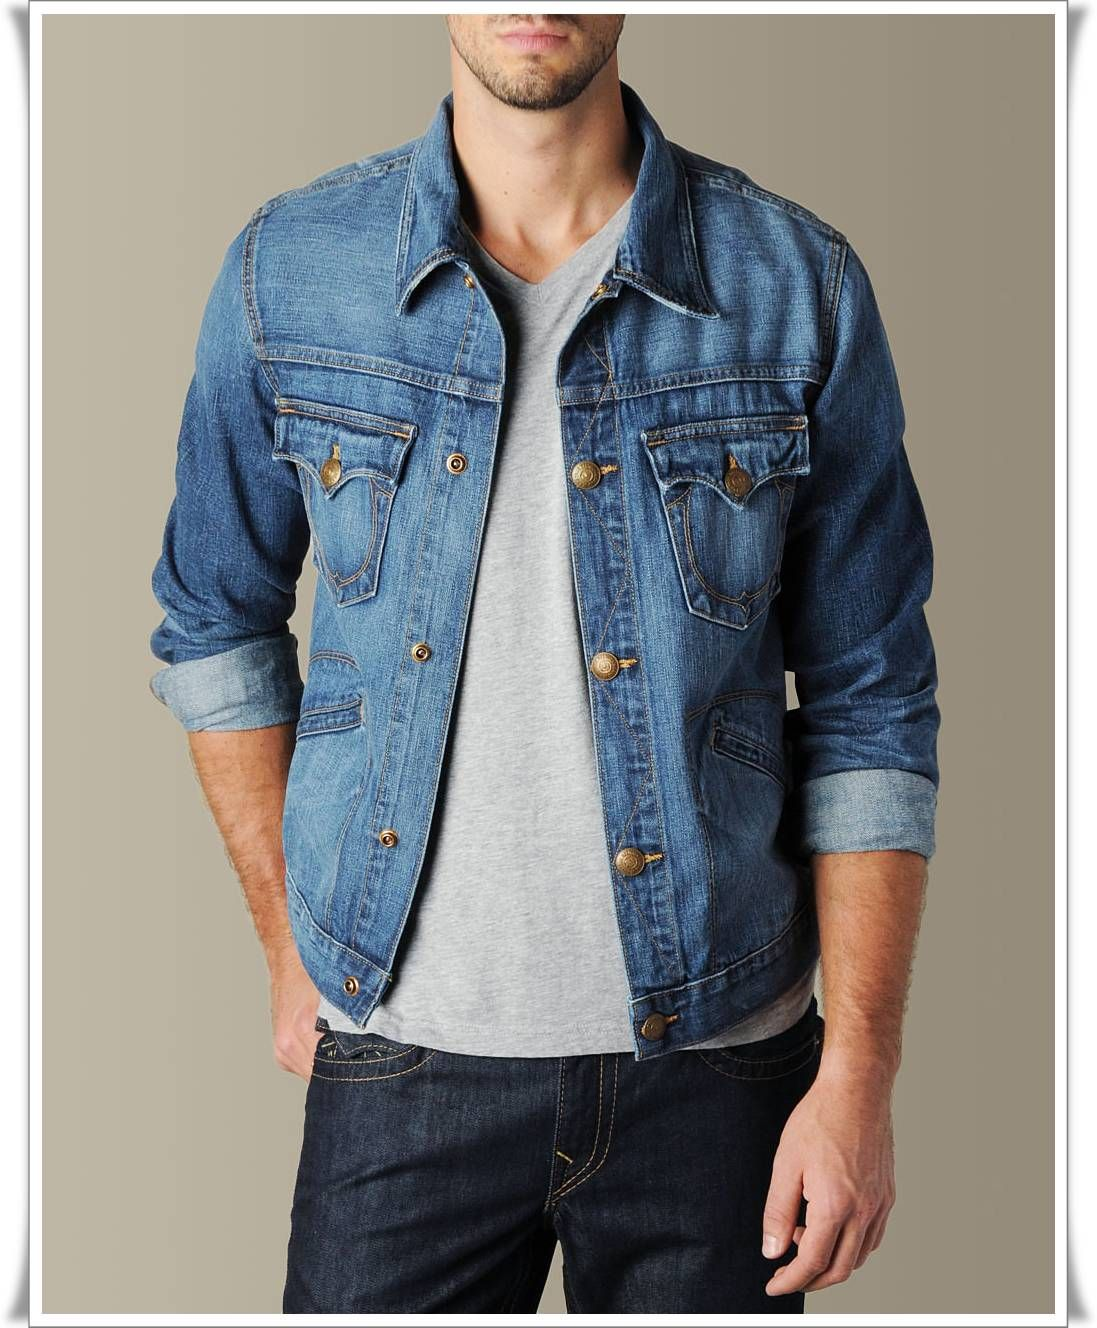 jean jacket mens - Google Search | The Denim Trucker Jacket ...